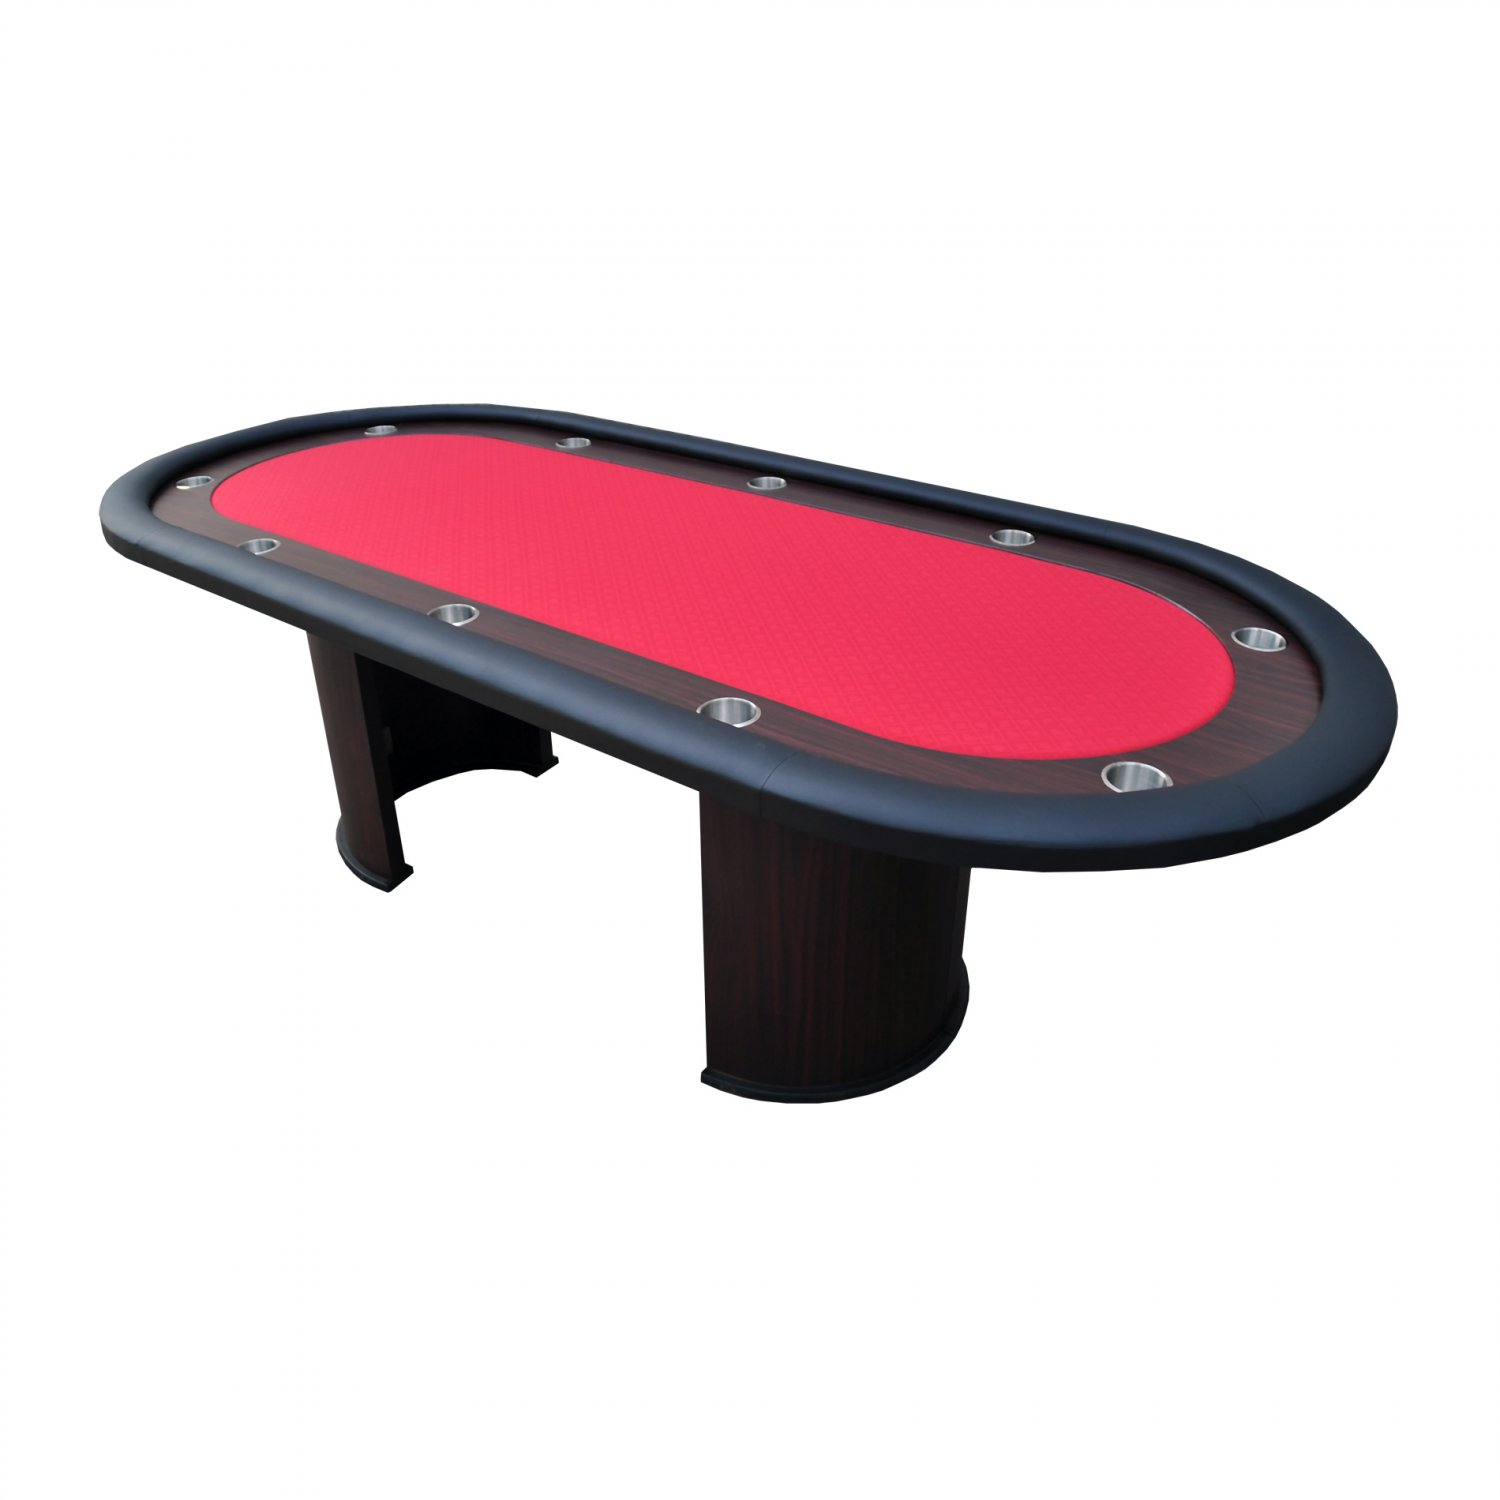 "96"" Professional Texas Holdem Casino Poker Table Red Ver.2(Ship US Country Only) #16365-R#"